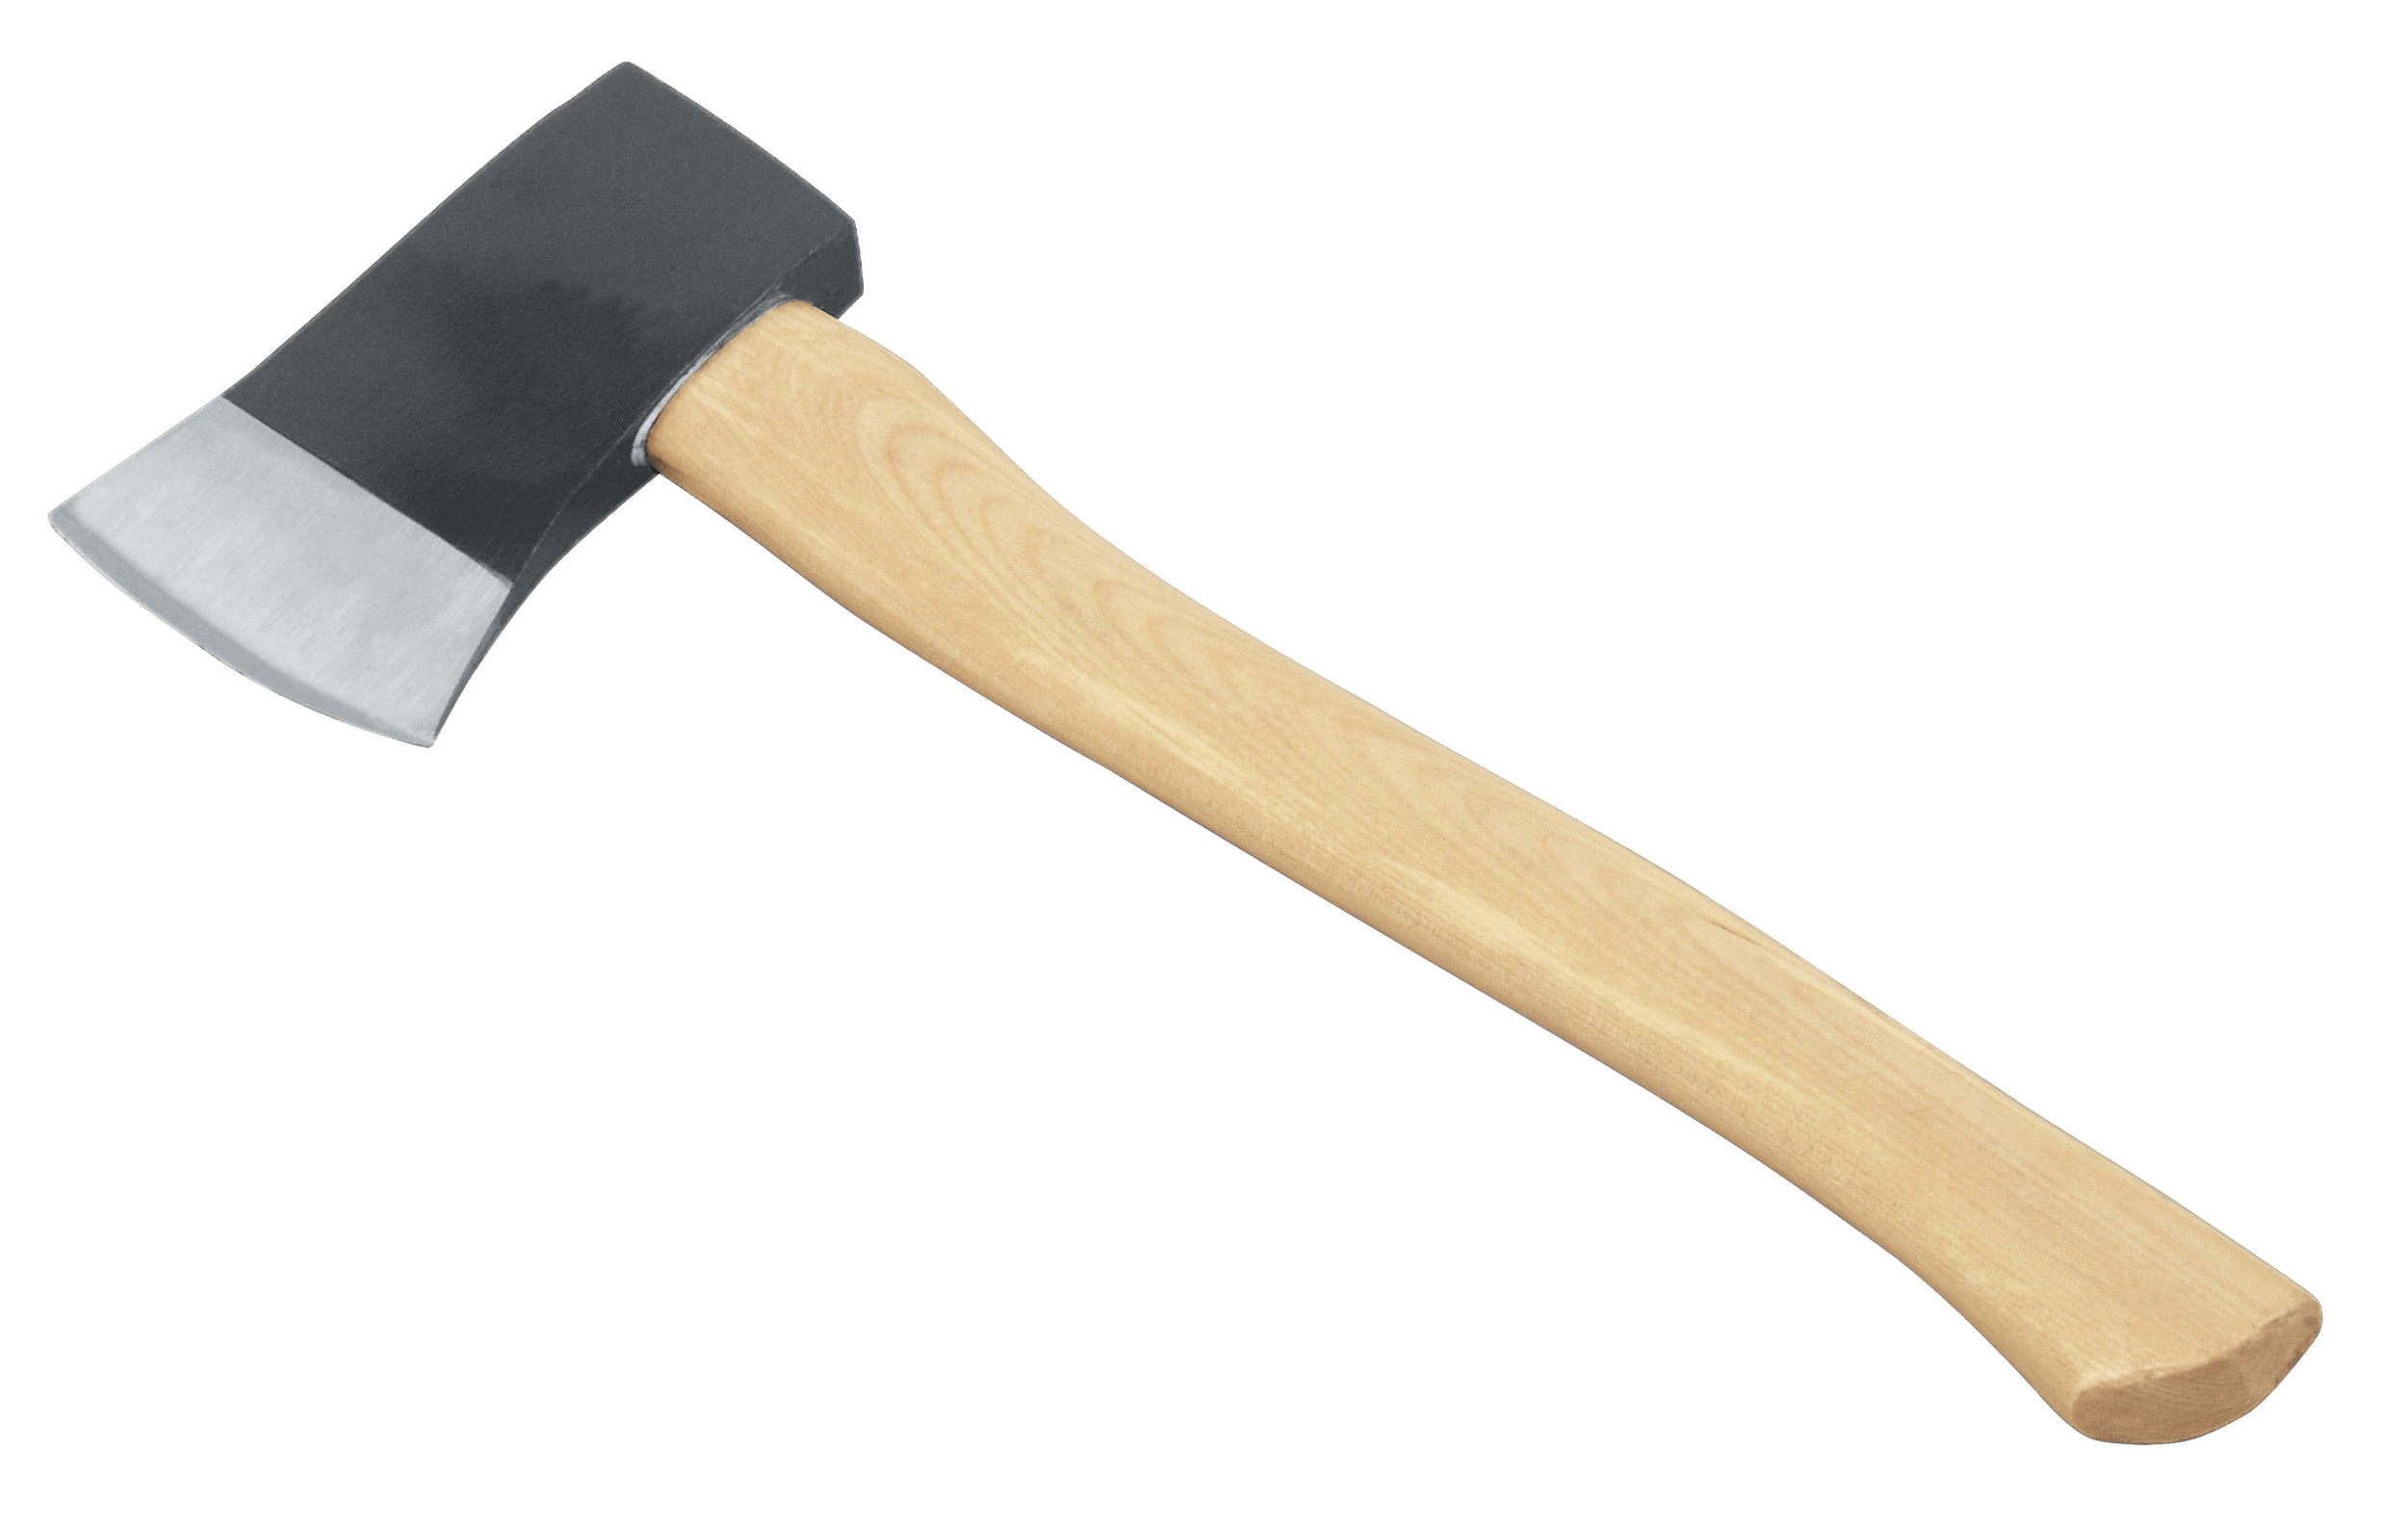 Axe clipart long object. Transparent png stickpng